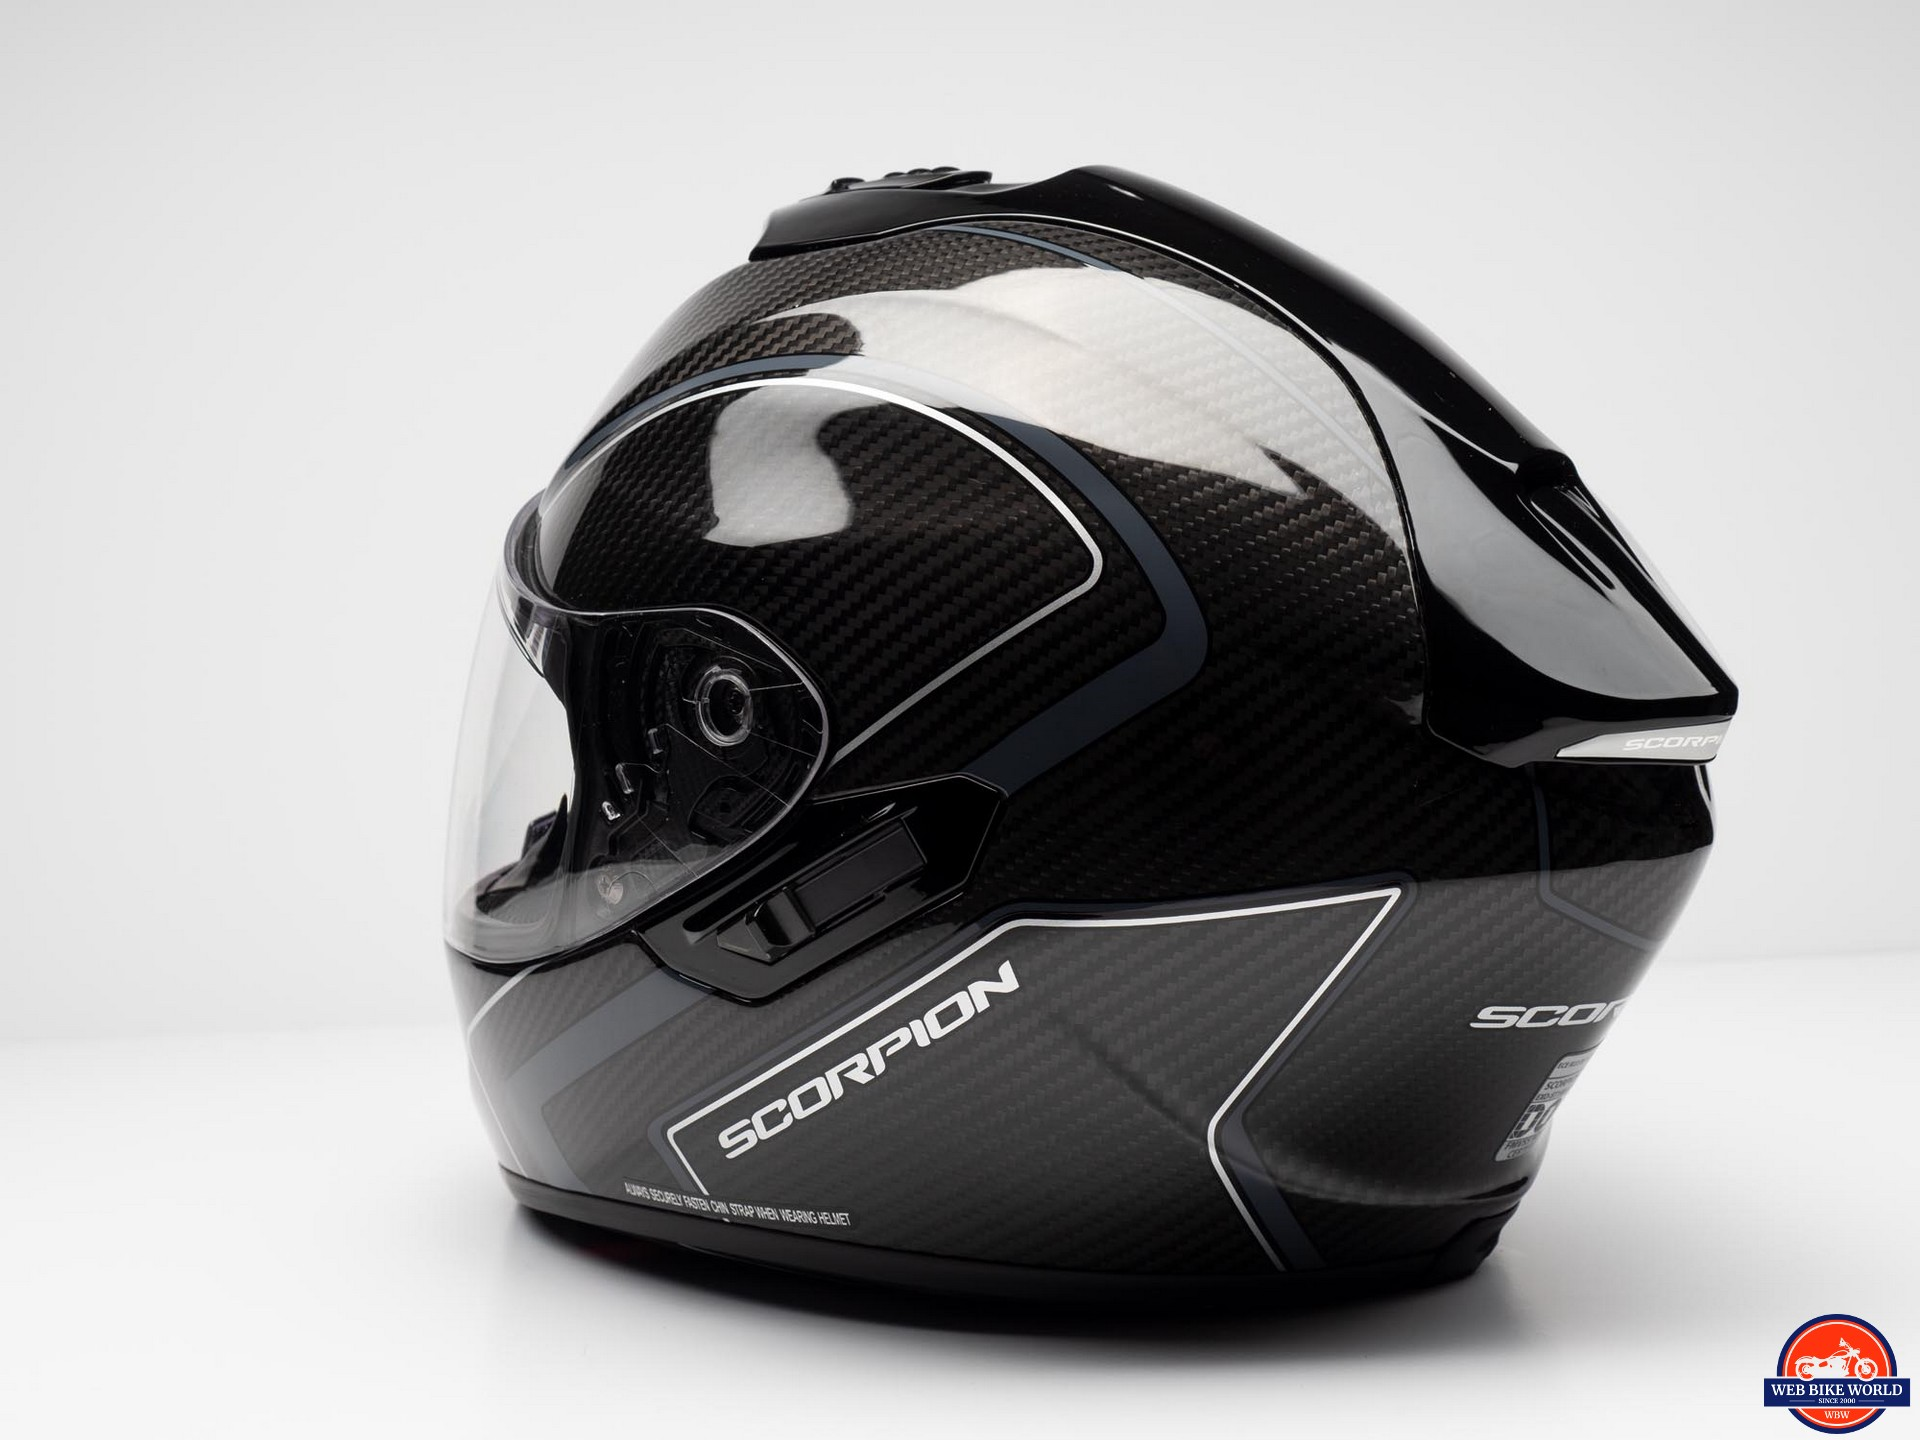 Scorpion EXO-ST1400 Carbon Helmet side view